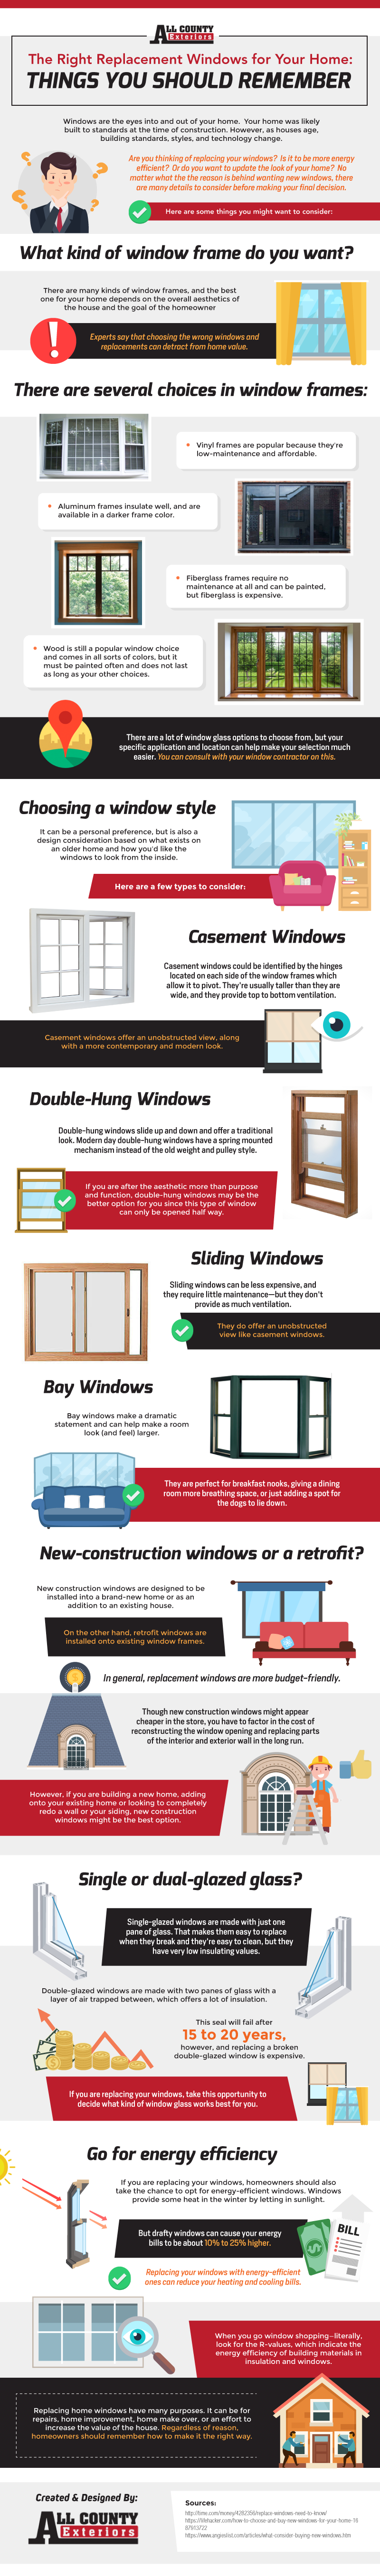 How to Buy Windows for Your Home - Infographic